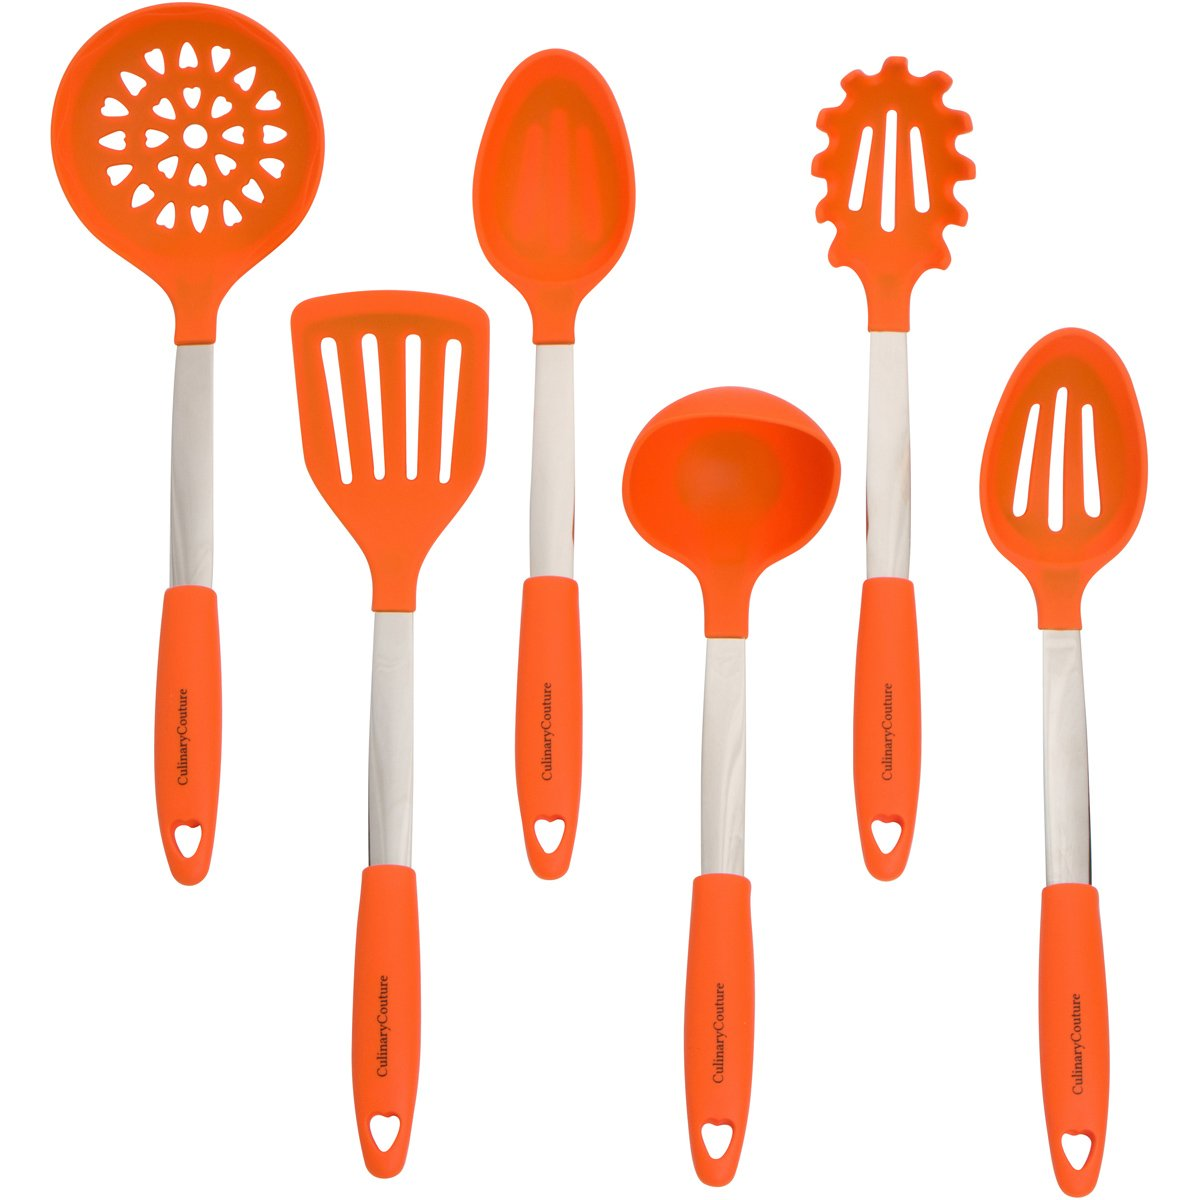 Orange Kitchen Utensil Set - Stainless Steel & Silicone Heat Resistant Professional Cooking Tools - Spatula, Mixing & Slotted Spoon, Ladle, Pasta Fork Server, Drainer - Bonus Ebook!